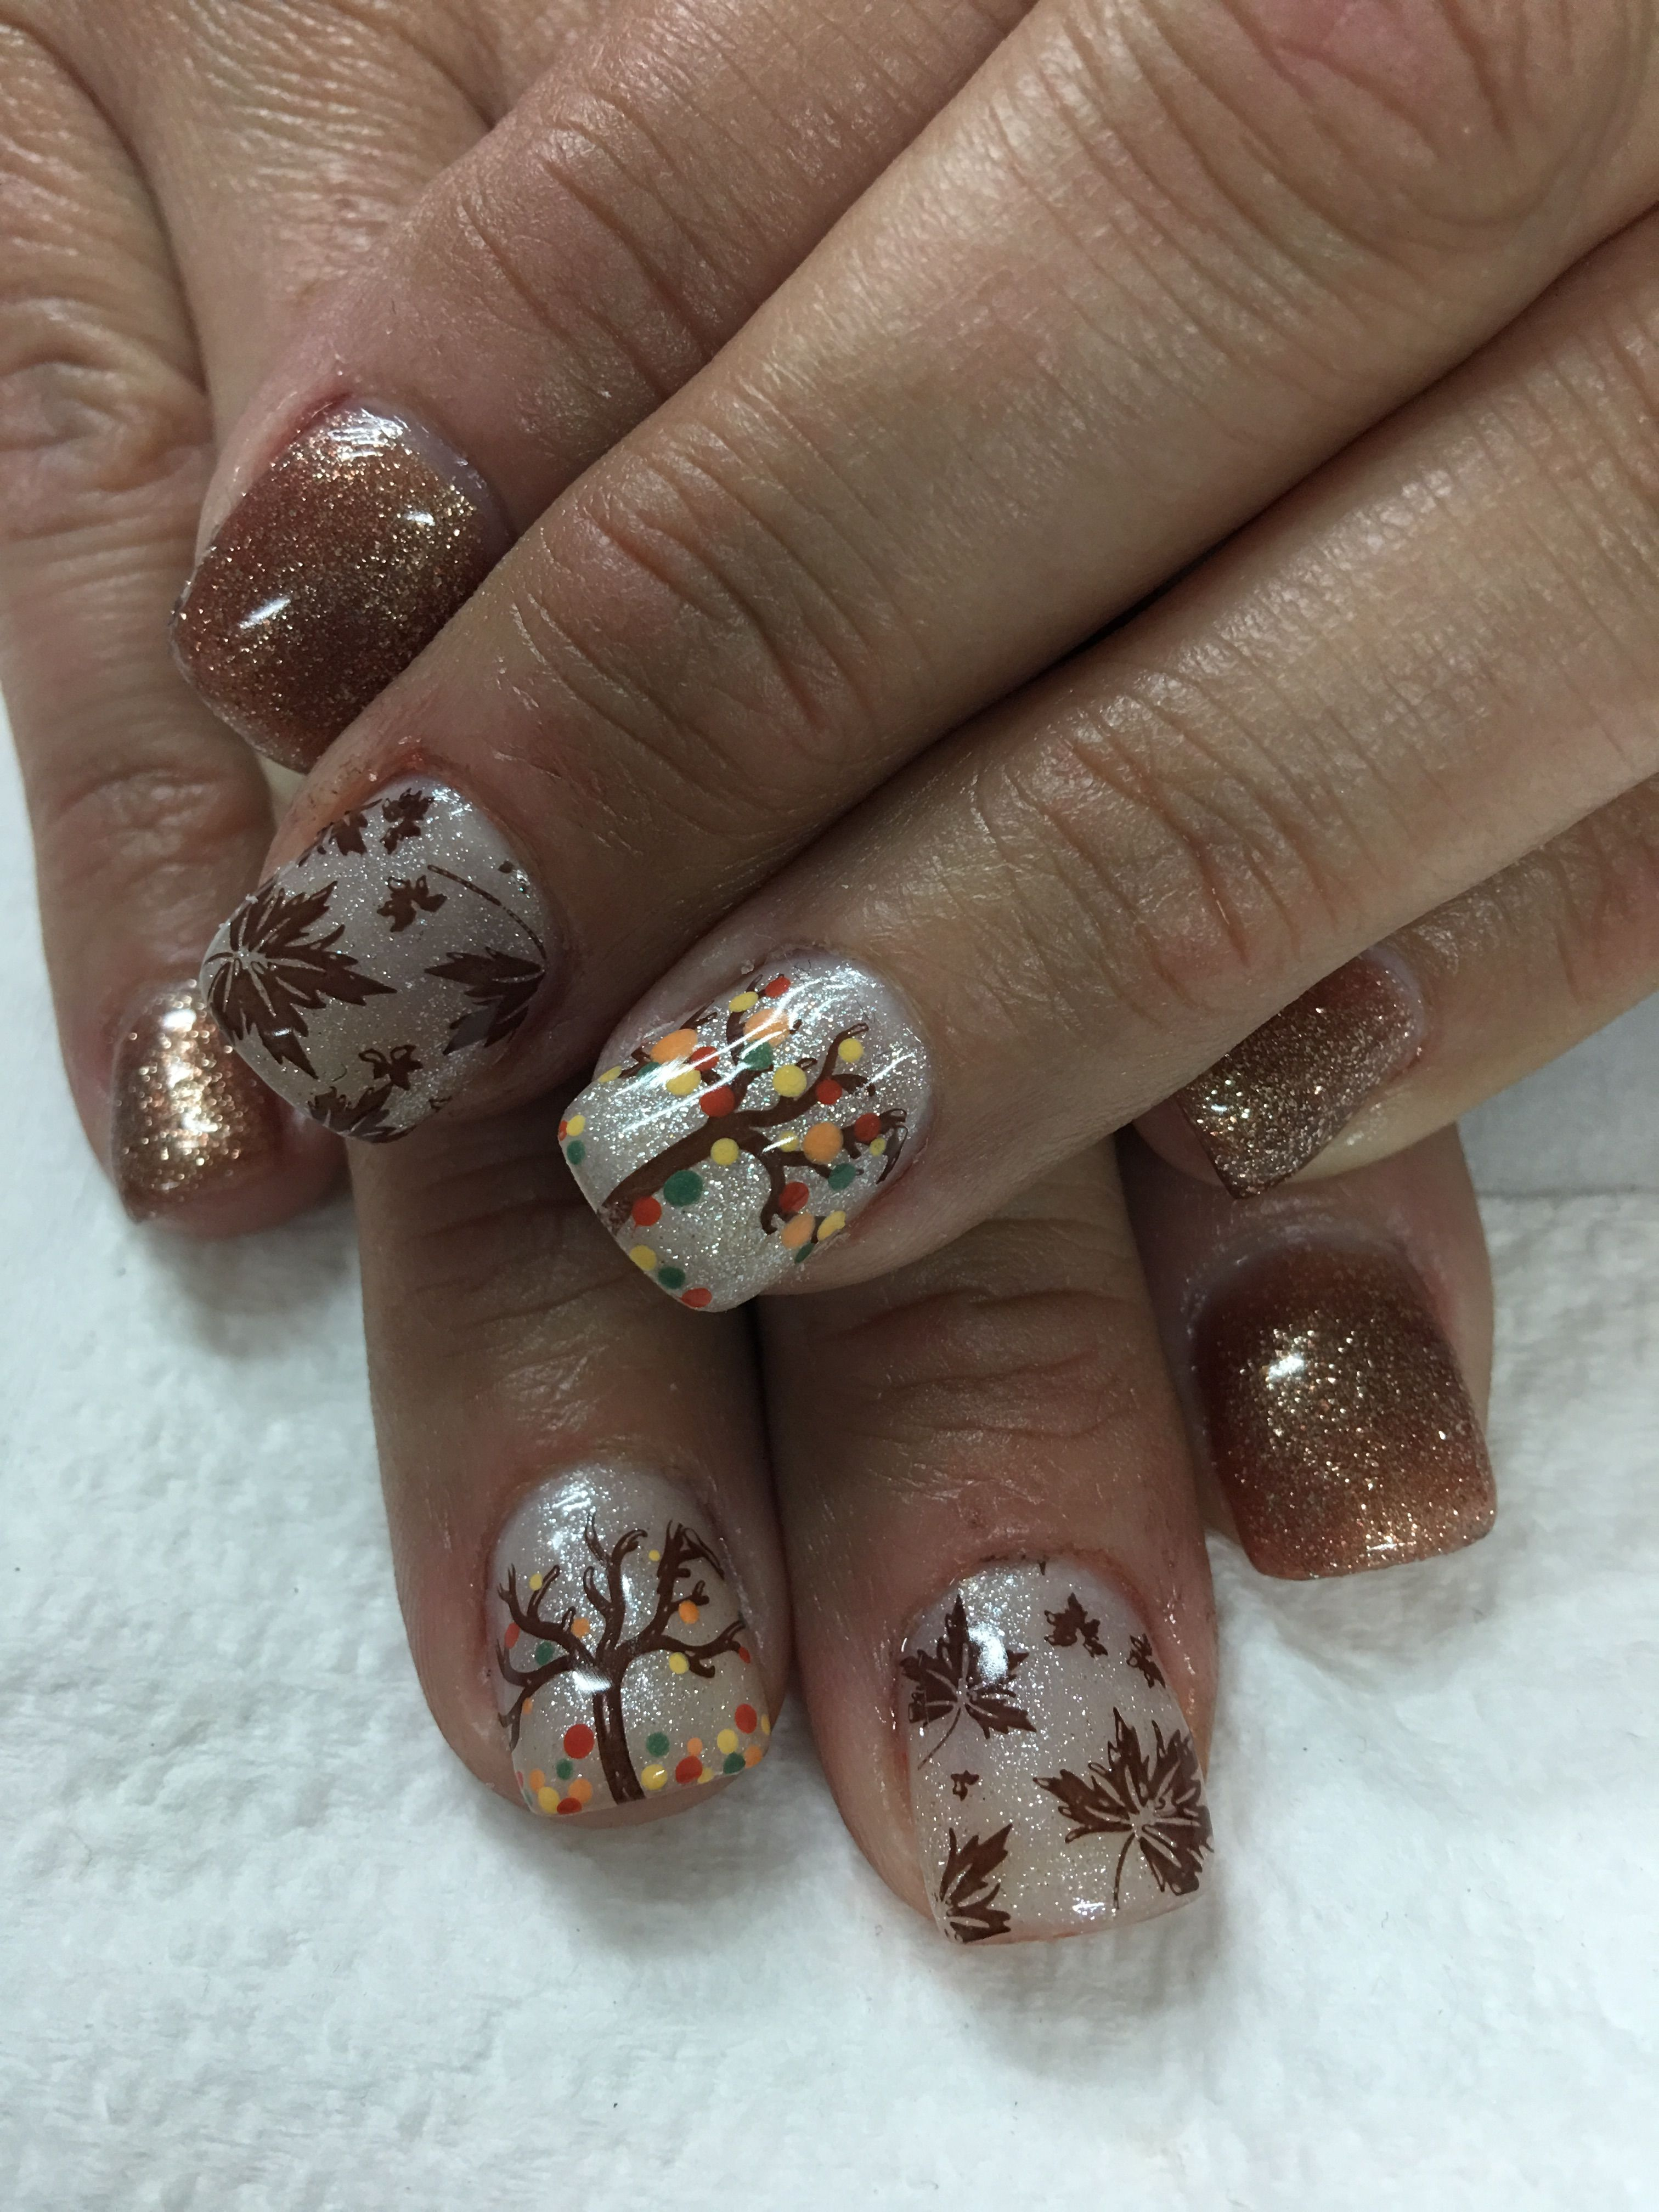 Fall Gel Nails Copper Glitter Shimmer Off White Stamped Leaves And Falling Leaves Tree Fall Gel Nails Nail Designs Fall Nail Art Designs